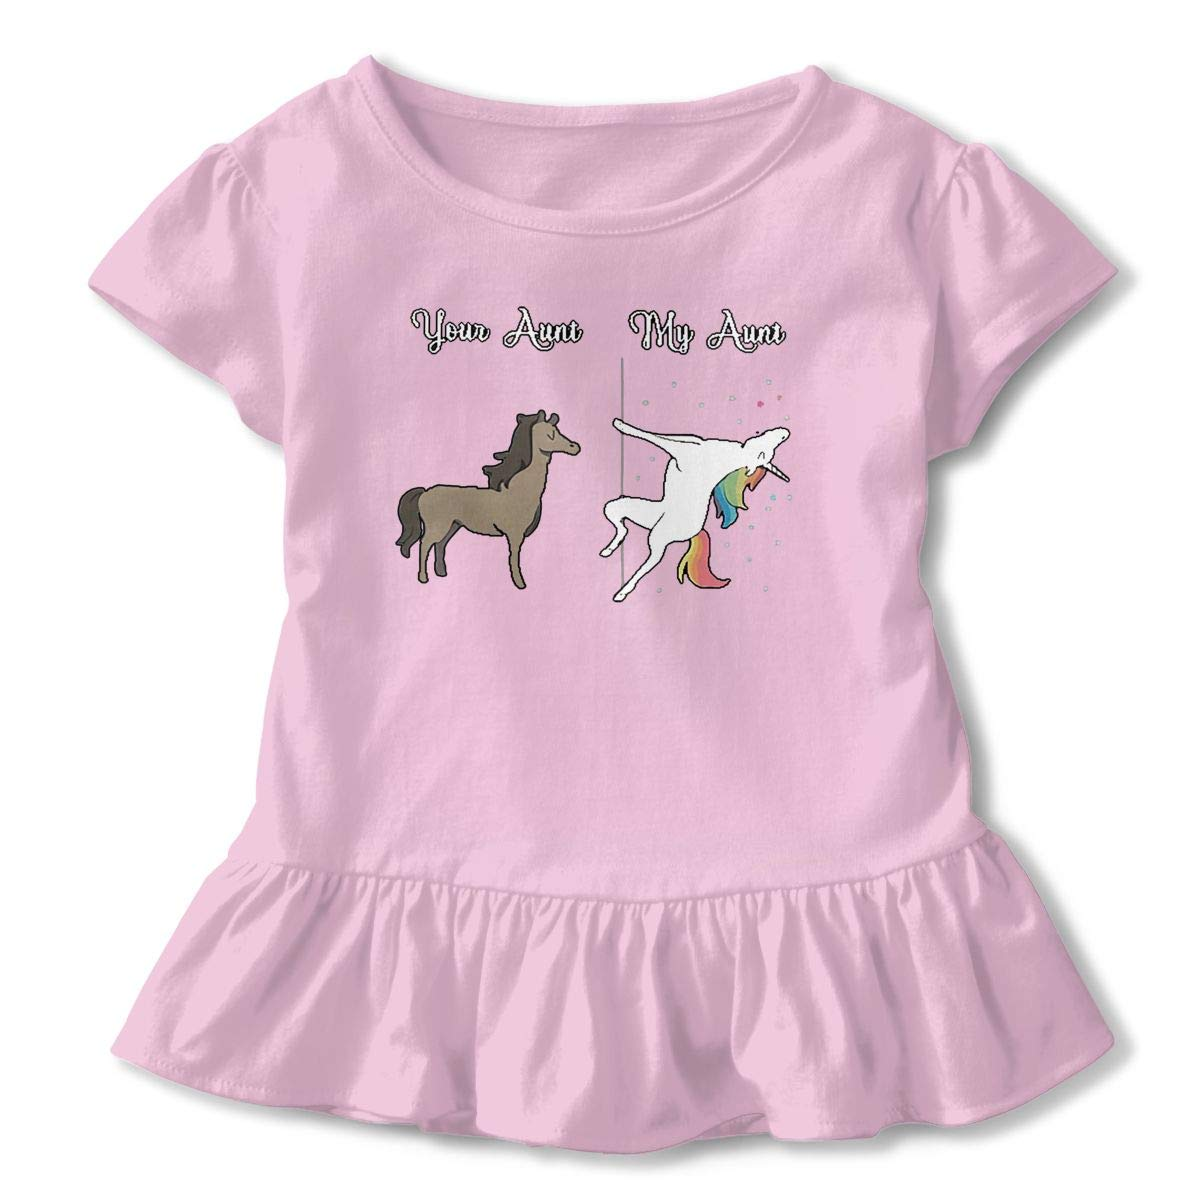 NMDJC CCQ Your Aunt My Aunt Baby Skirts Lovely Kids T Shirt Dress Soft Flounces Outfits